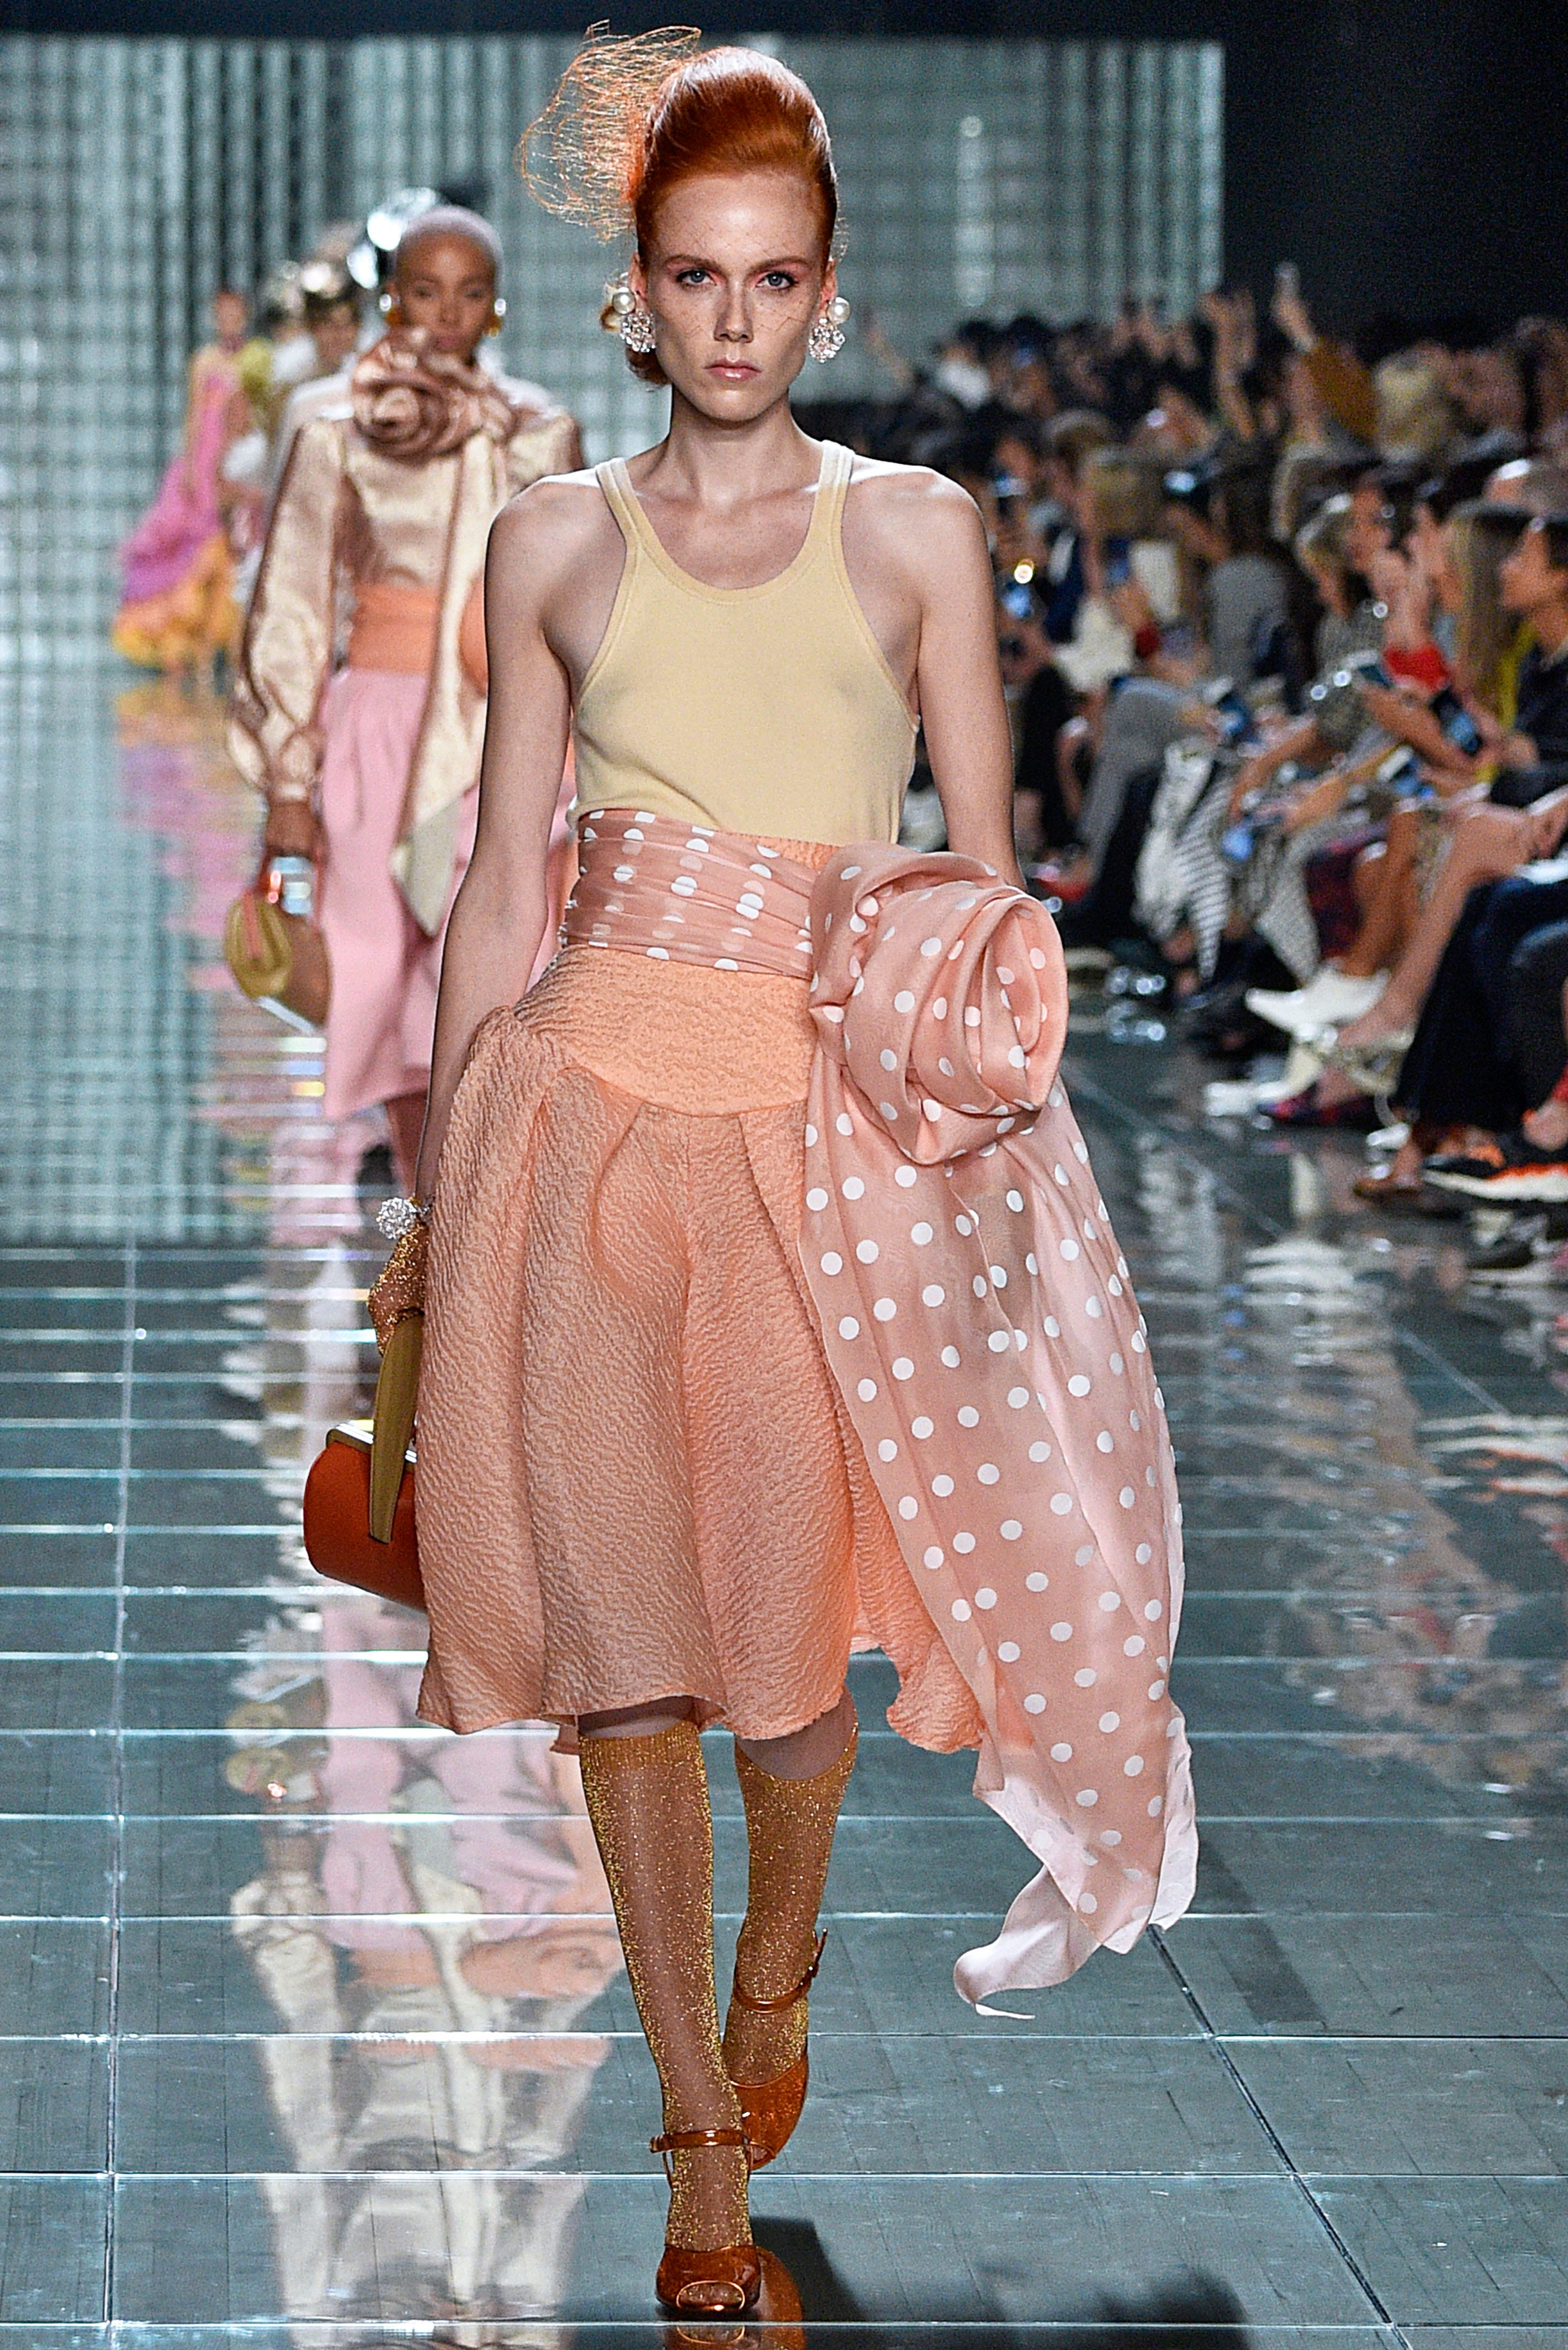 Forum on this topic: 26 Amazing Spring Bags Straight Off theRunway, 26-amazing-spring-bags-straight-off-therunway/